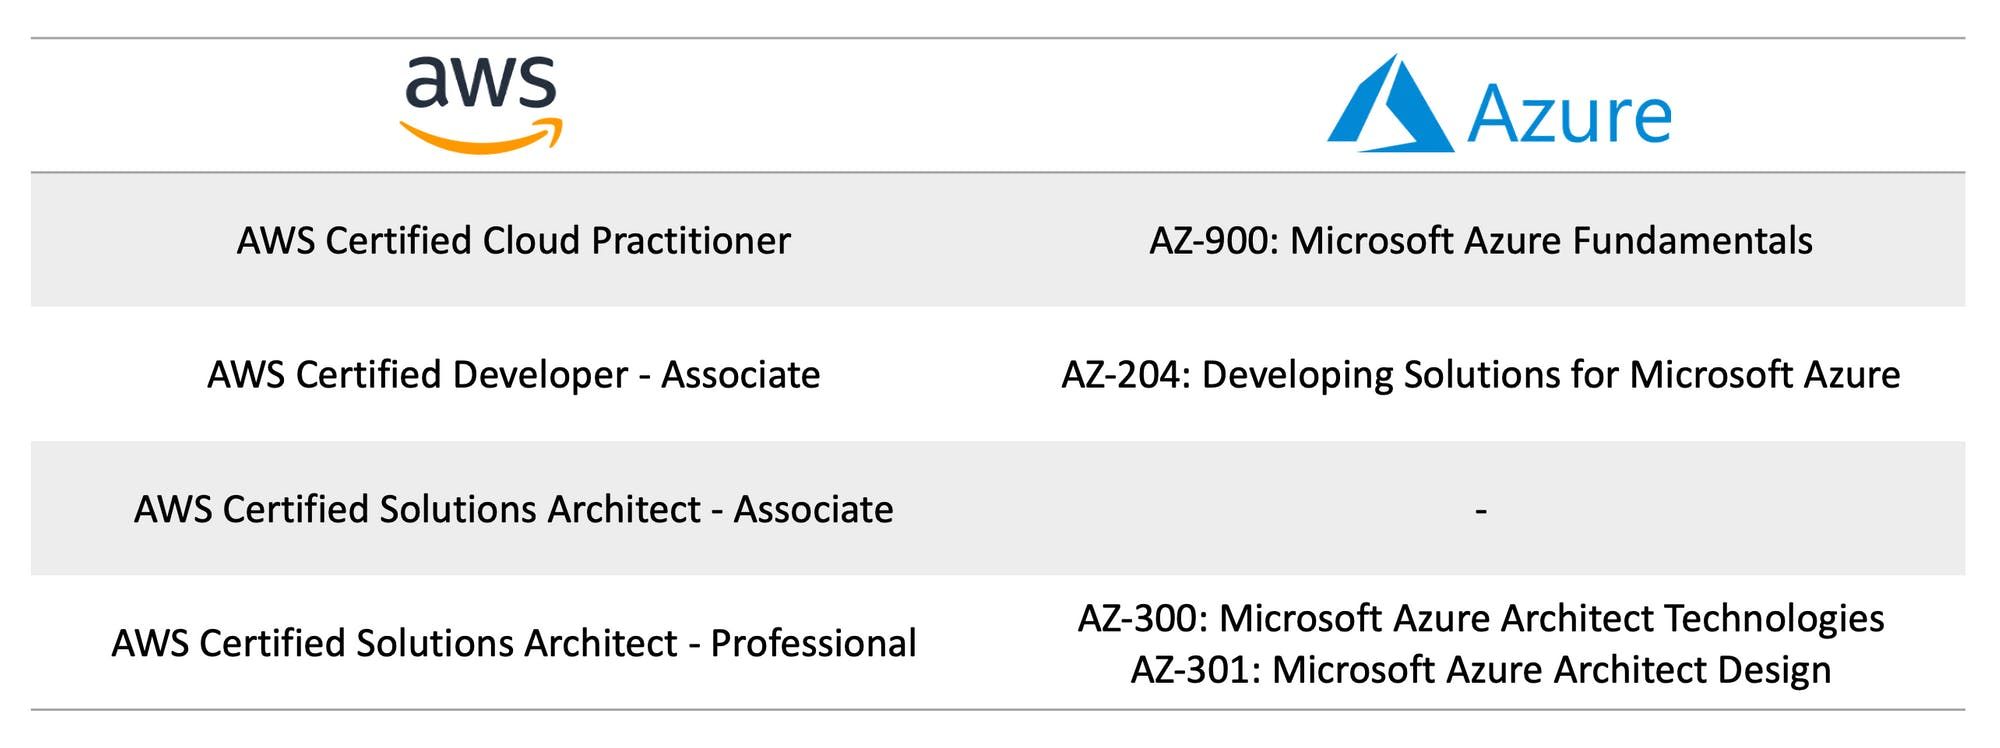 Comparison between AWS and Azure exams